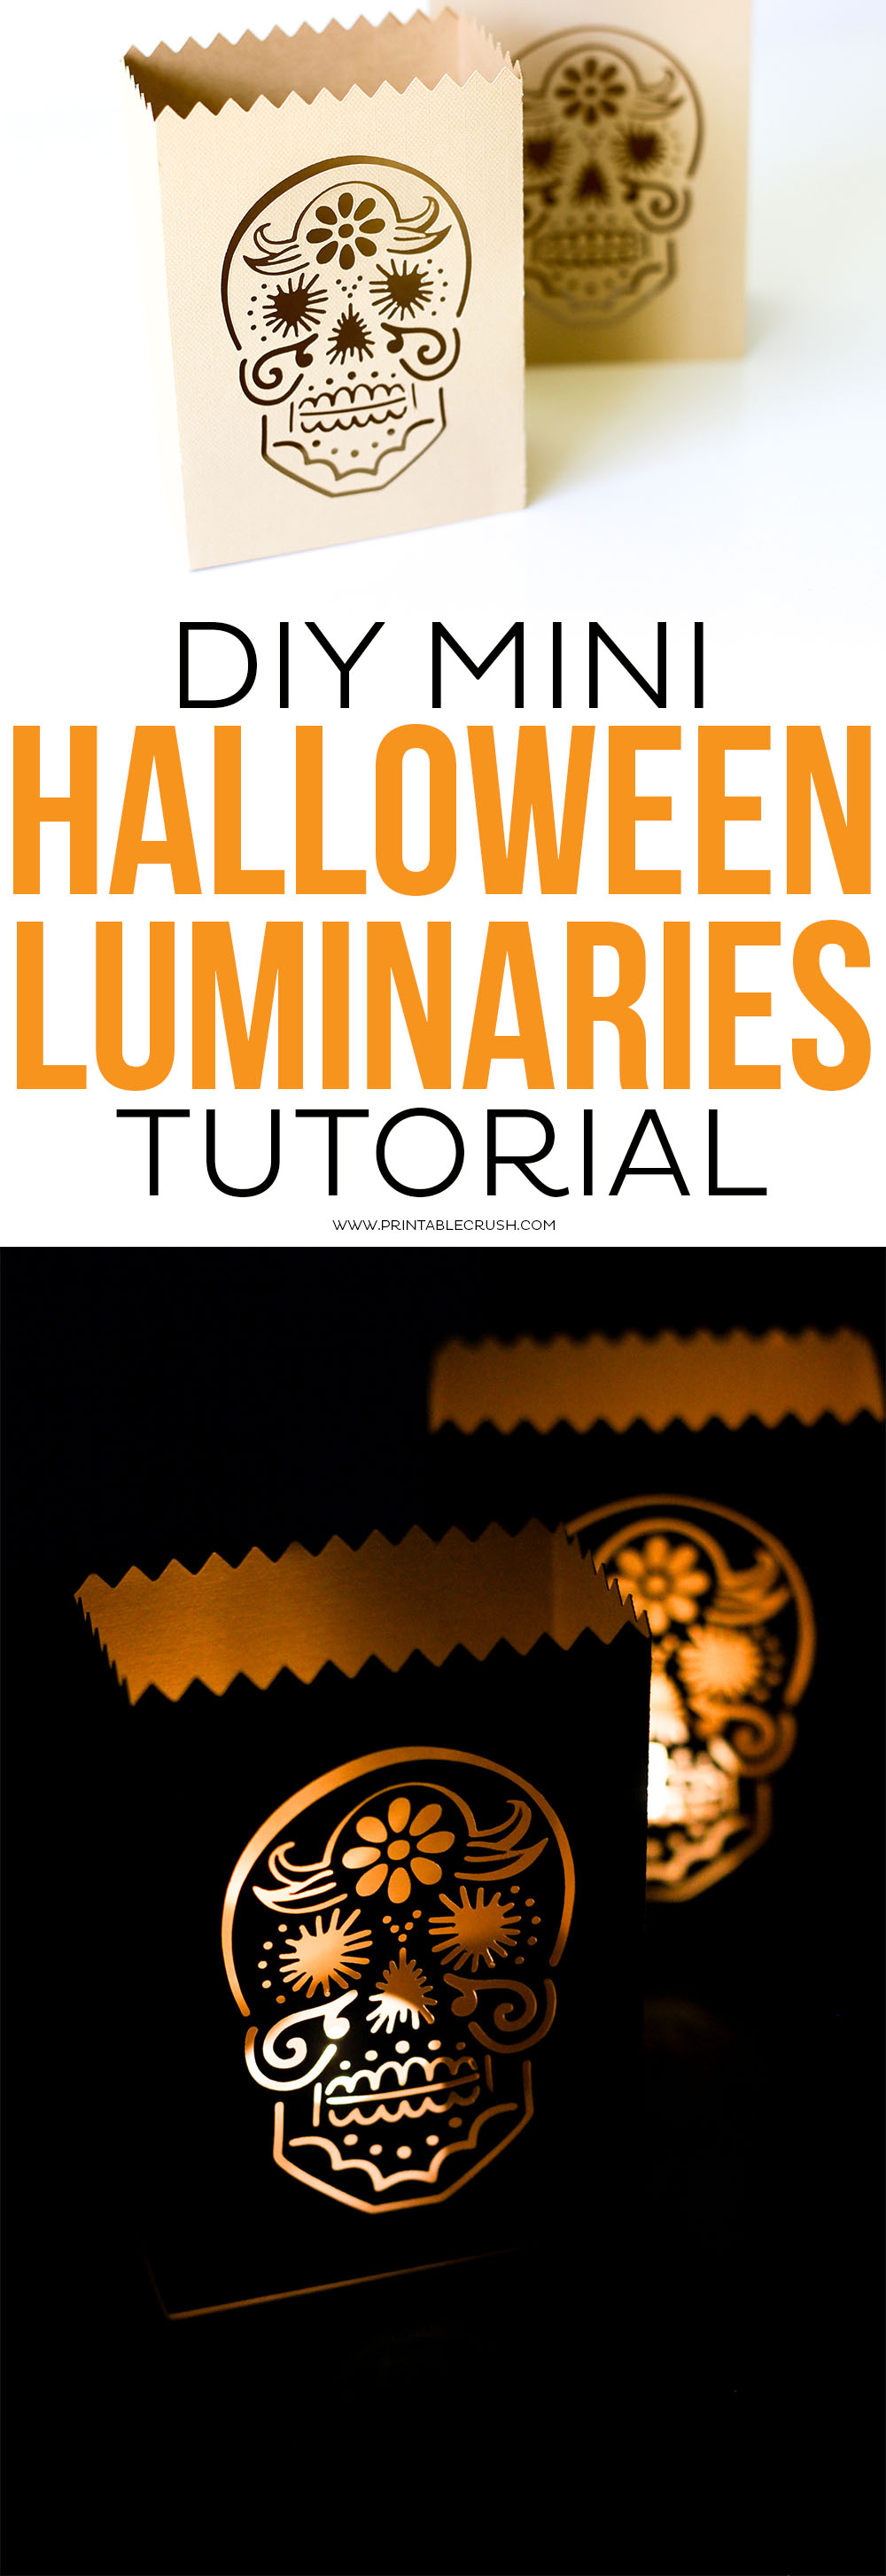 These DIY Mini Halloween Luminaries are perfect for you spooky decor. Customize the luminary file with any Halloween graphic you'd like! #halloweencraft #halloween #luminarias #luminaries #halloweenluminaries #cricutcraft #cricuttutorial via @printablecrush